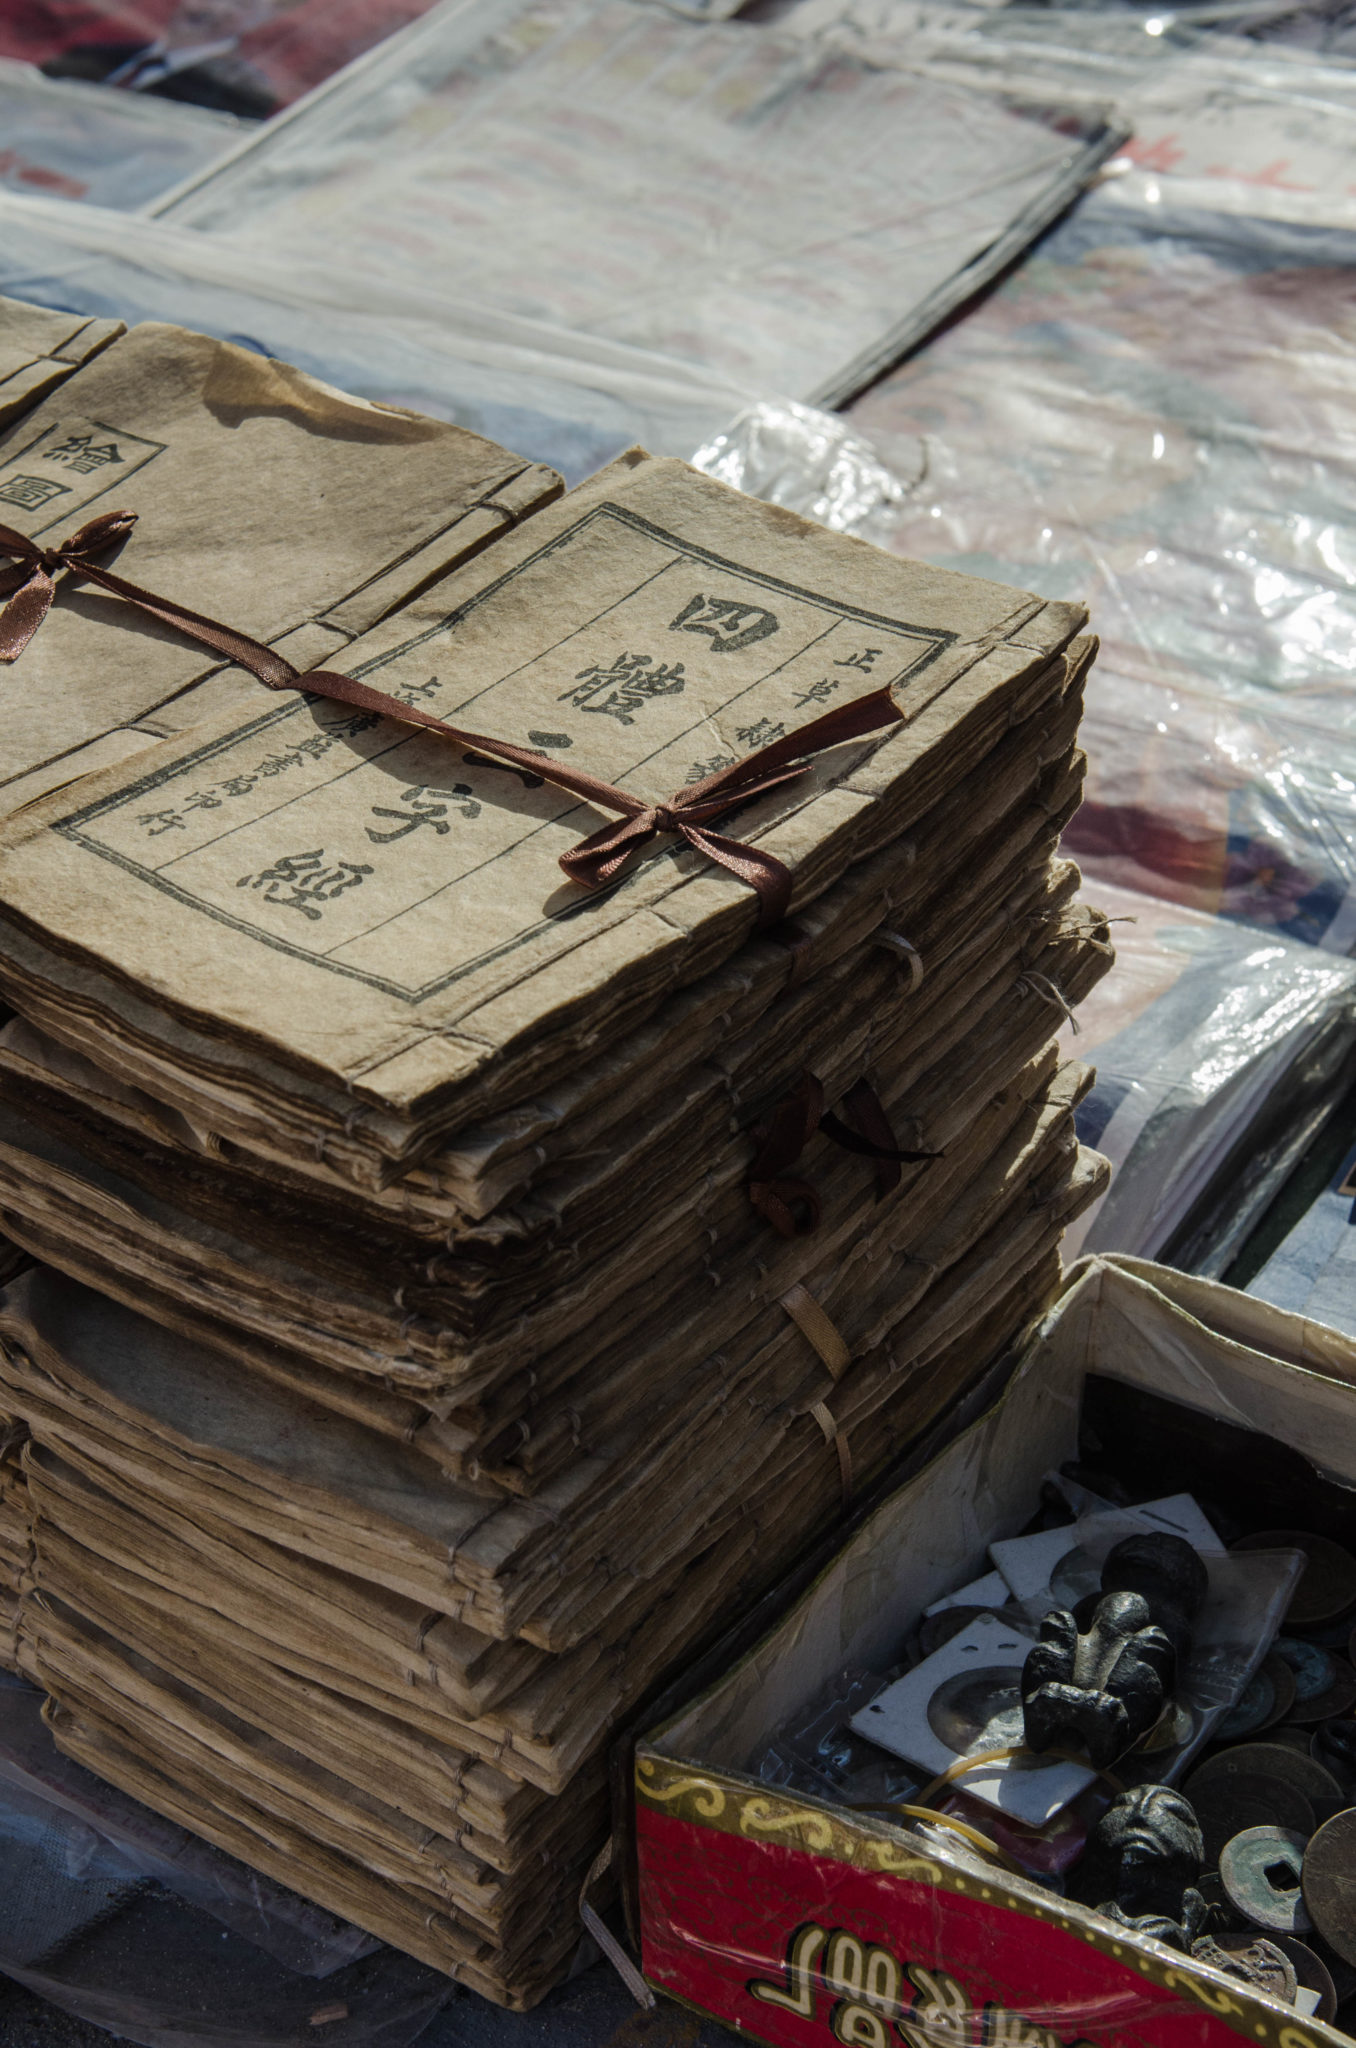 The Panjiayuan Antique Market in Beijing: Old documents wherever you look